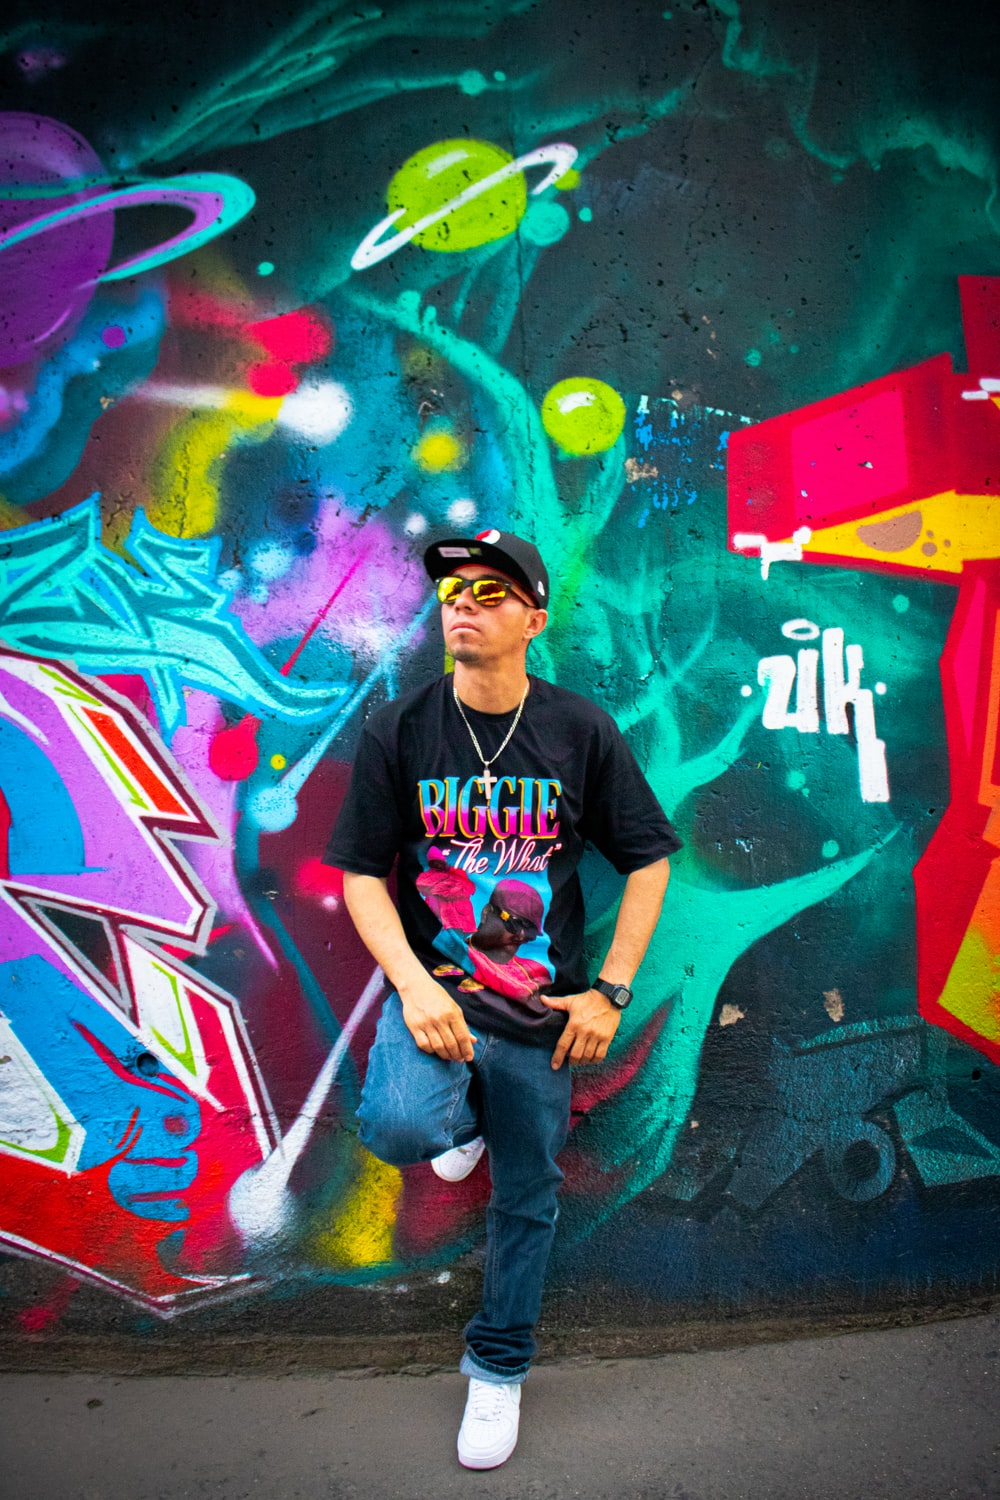 man leaning on graffiti wall